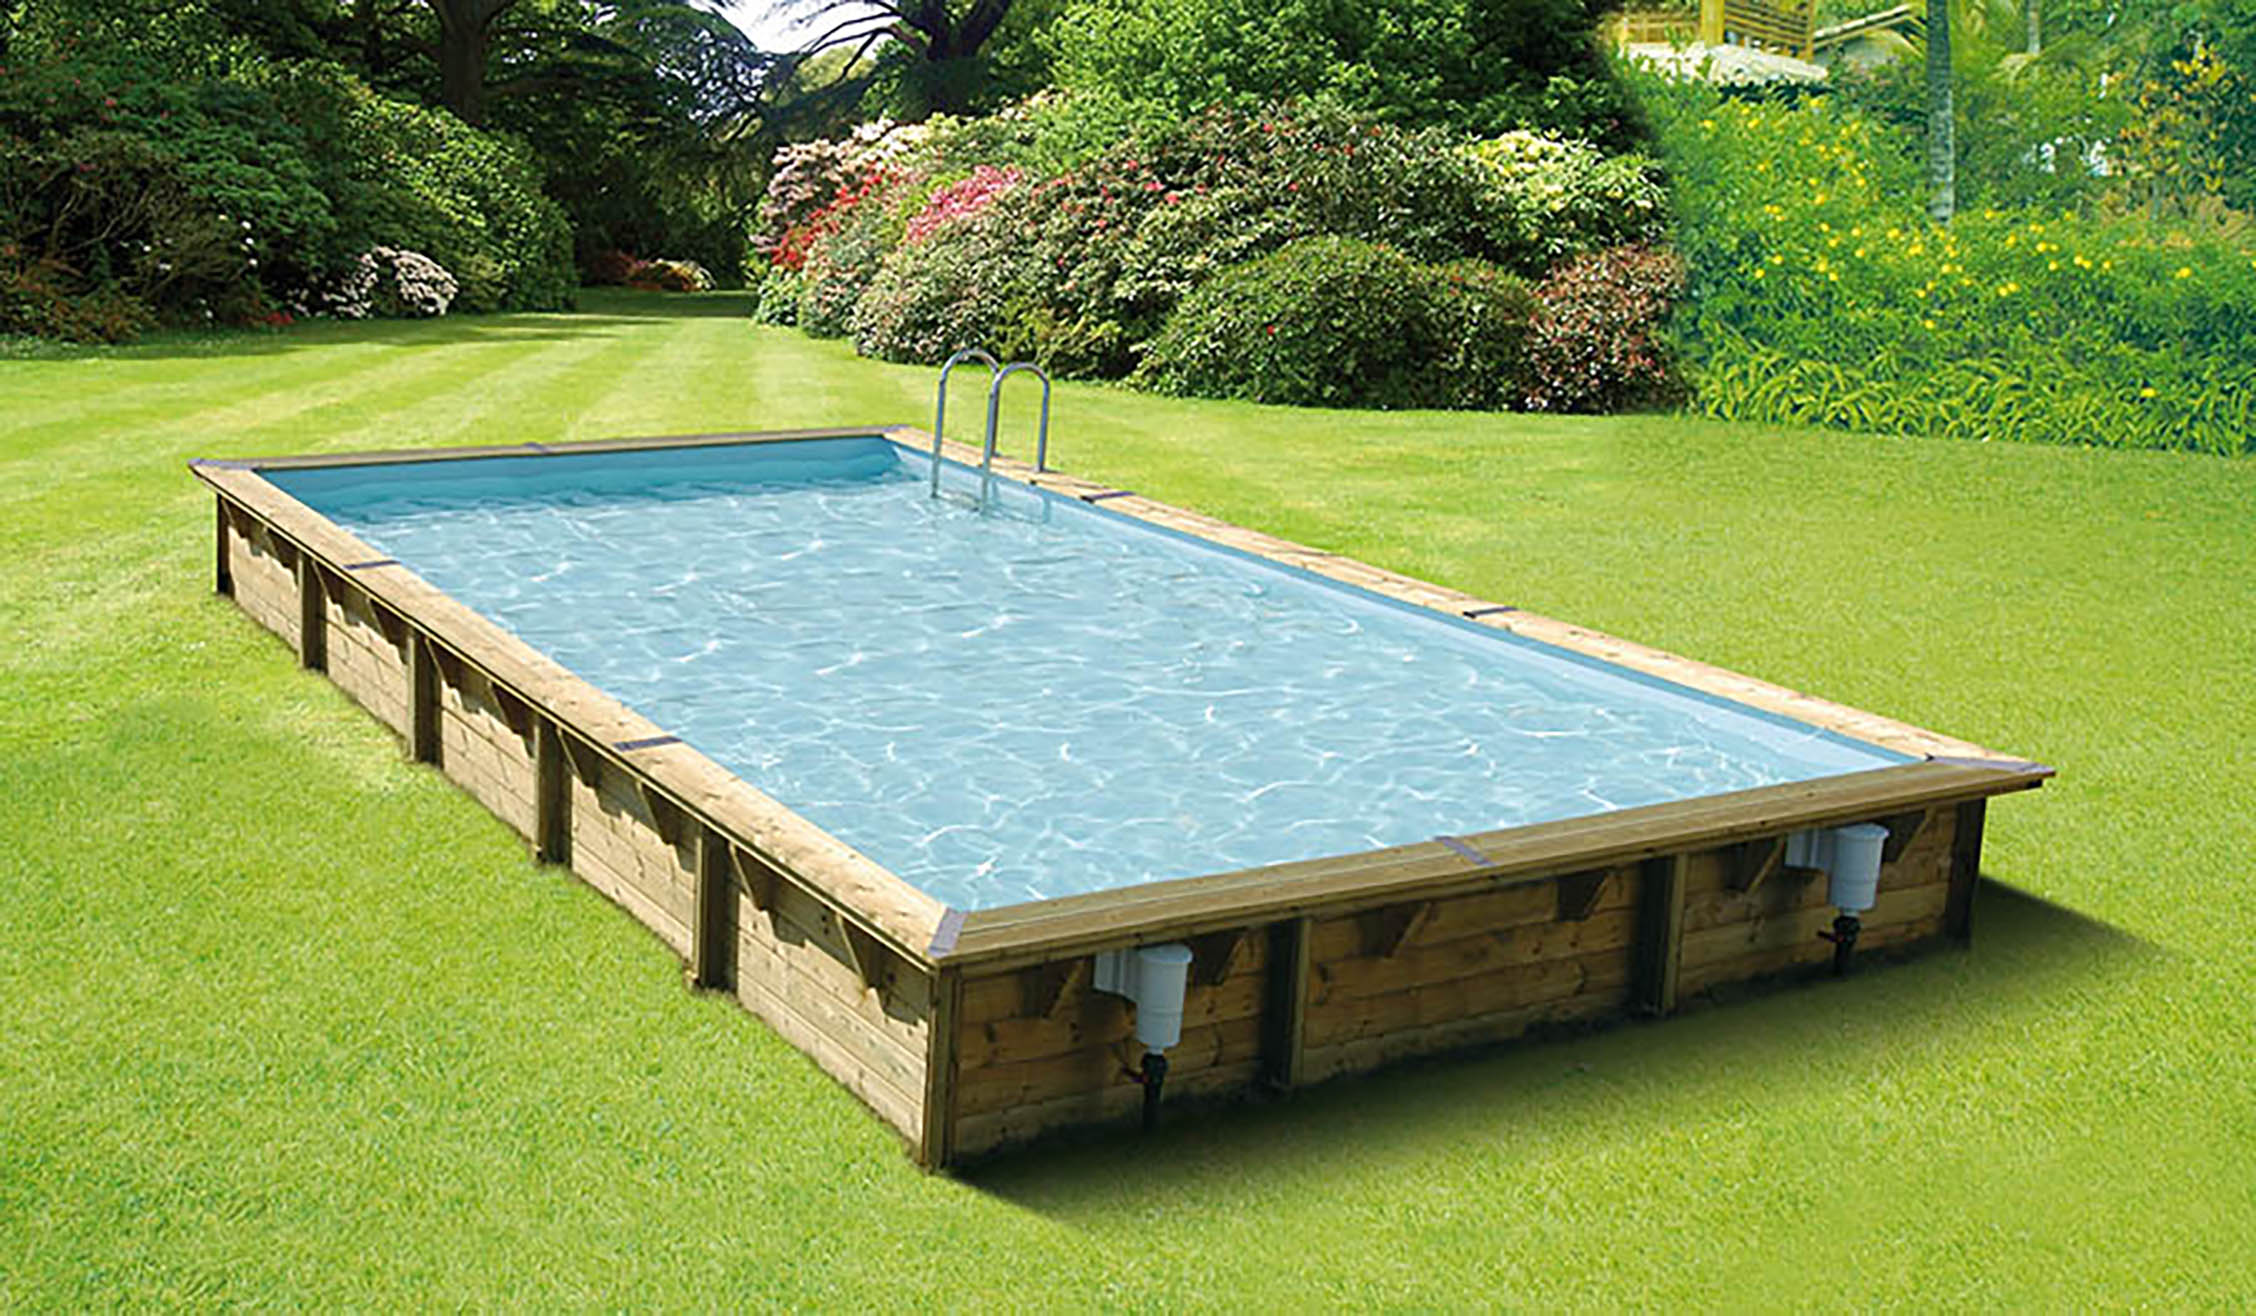 Amenagement piscine bois hors sol id es for Piscine hors sol imposable